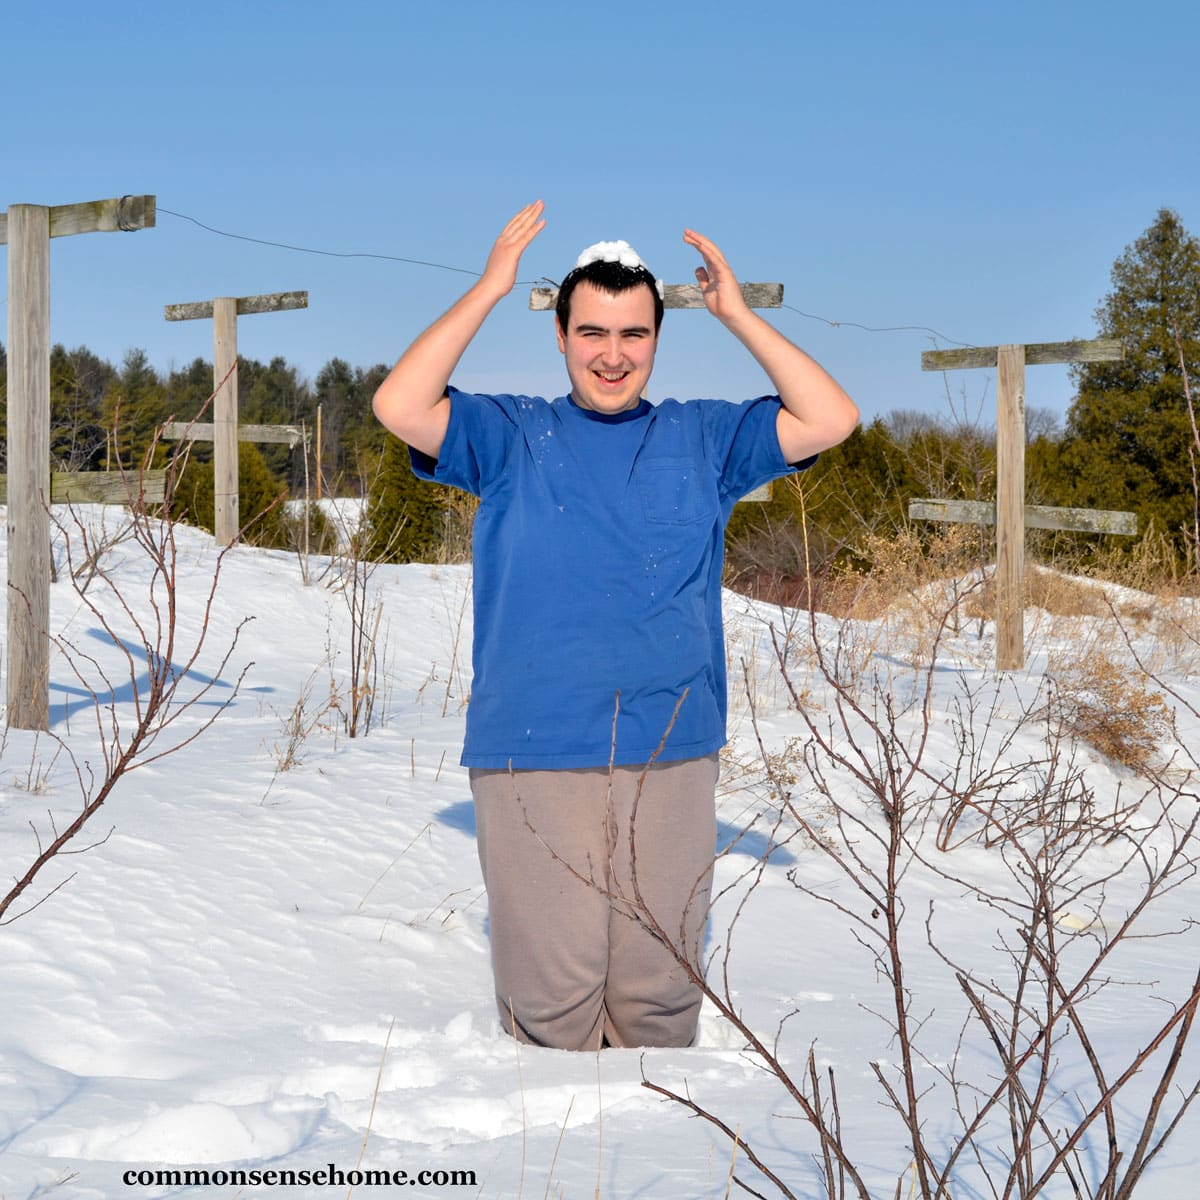 Young man in blue shirt cold training